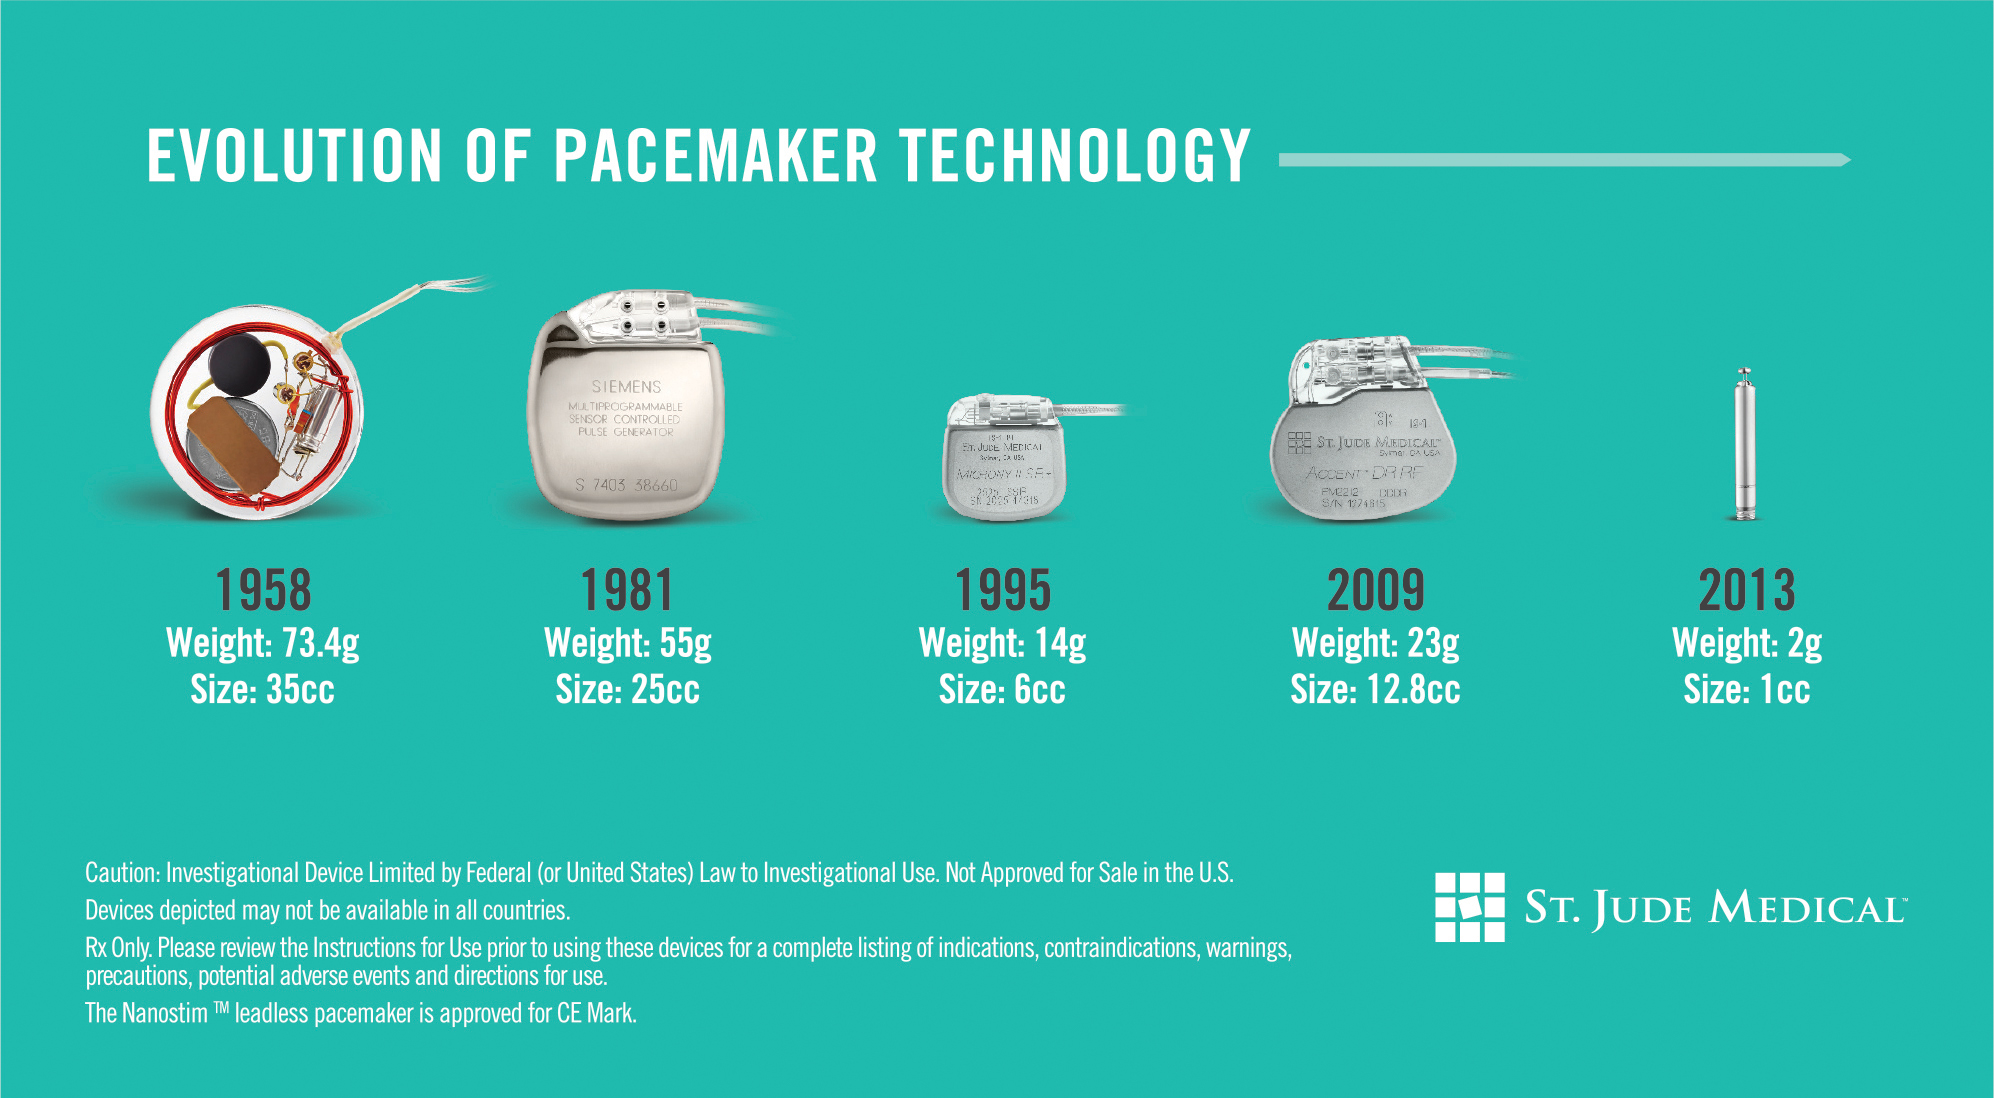 history of the pacemaker The evolution of pacemakers o aquilina, a brief history of cardiac pacing, images in paediatric cardiology, vol 8, no 2, pp 17-81, 2006.